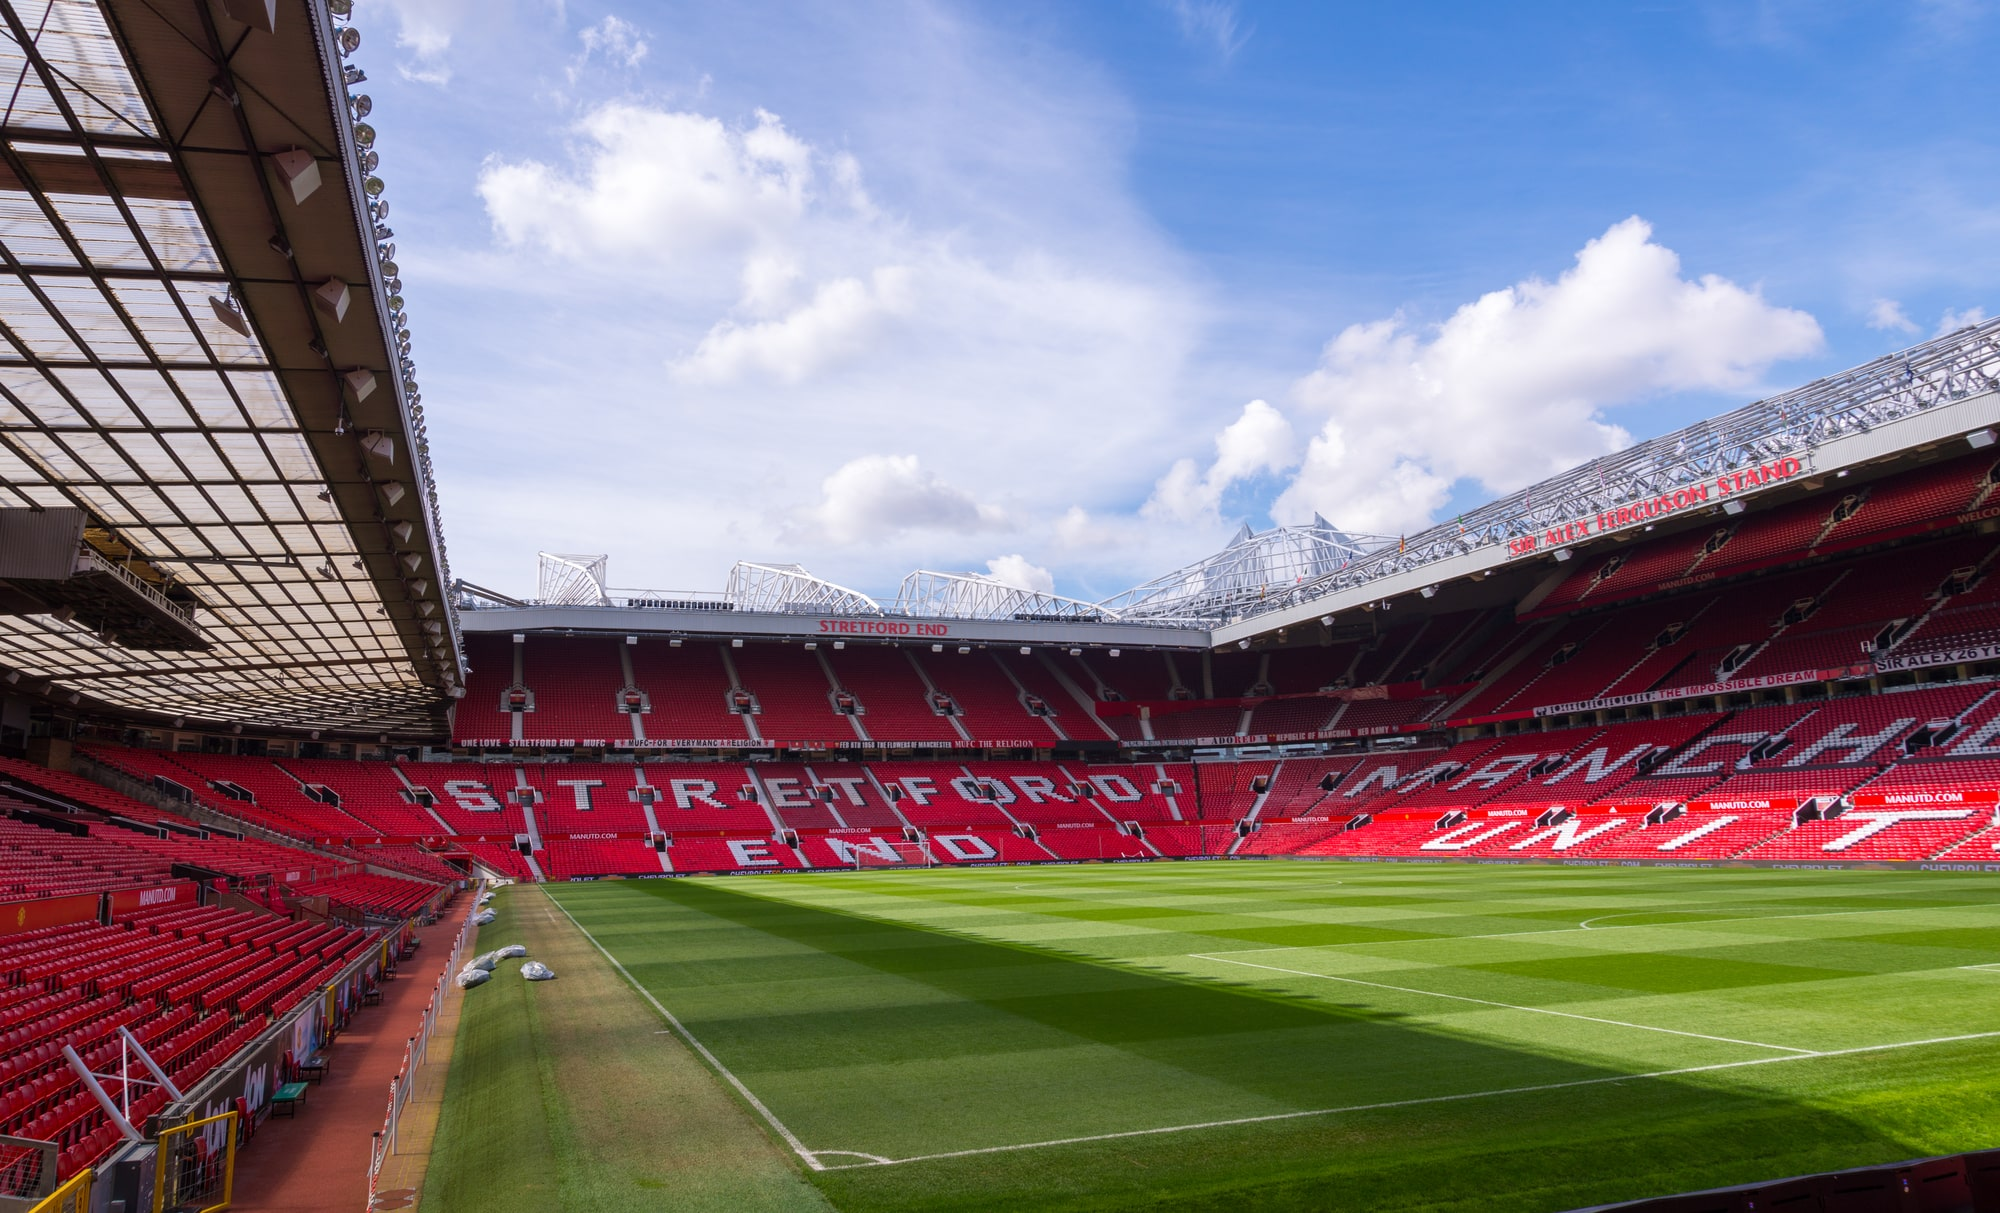 Manchester United v Sheffield United Preview & Prediction - 24/06/2020